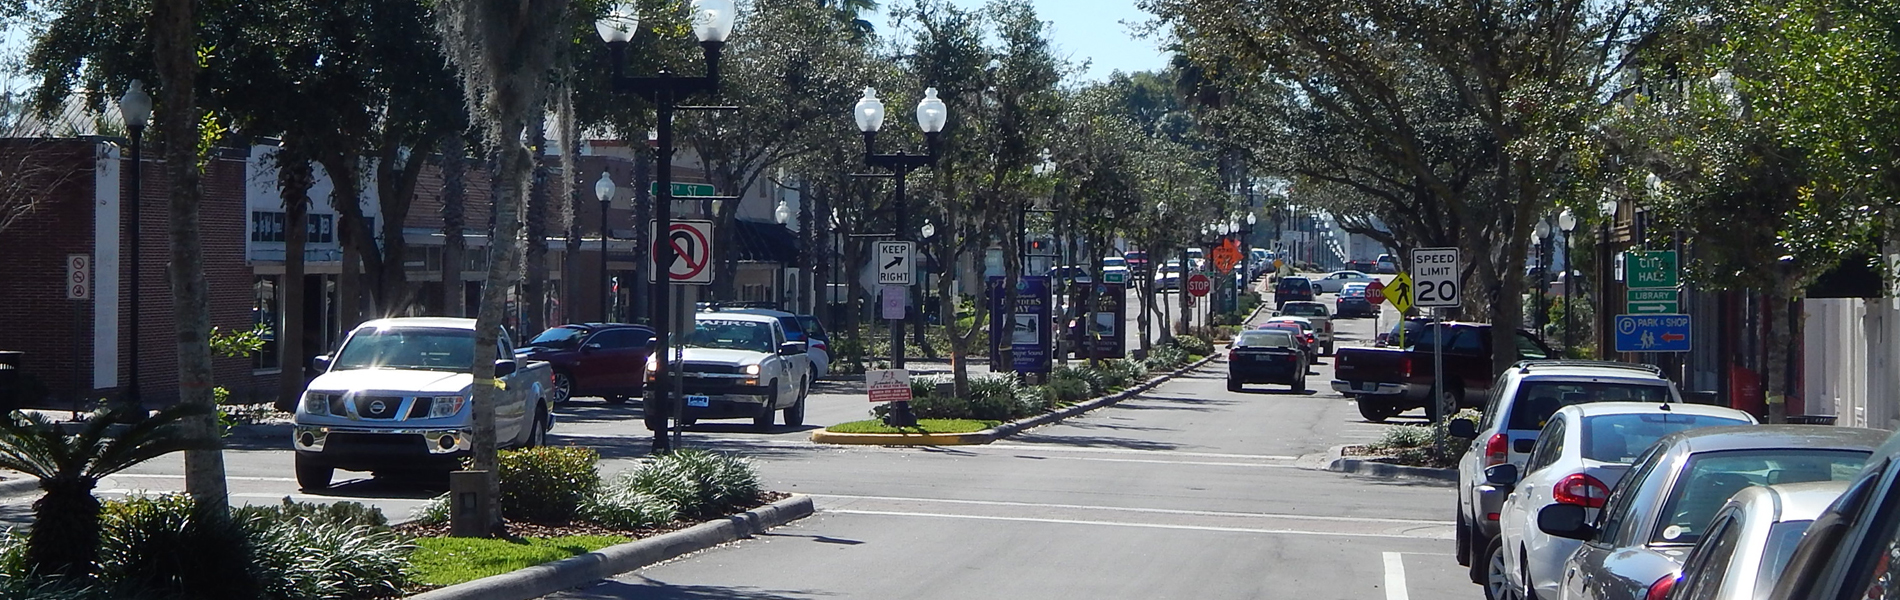 Downtown-Zephyrhills.jpg